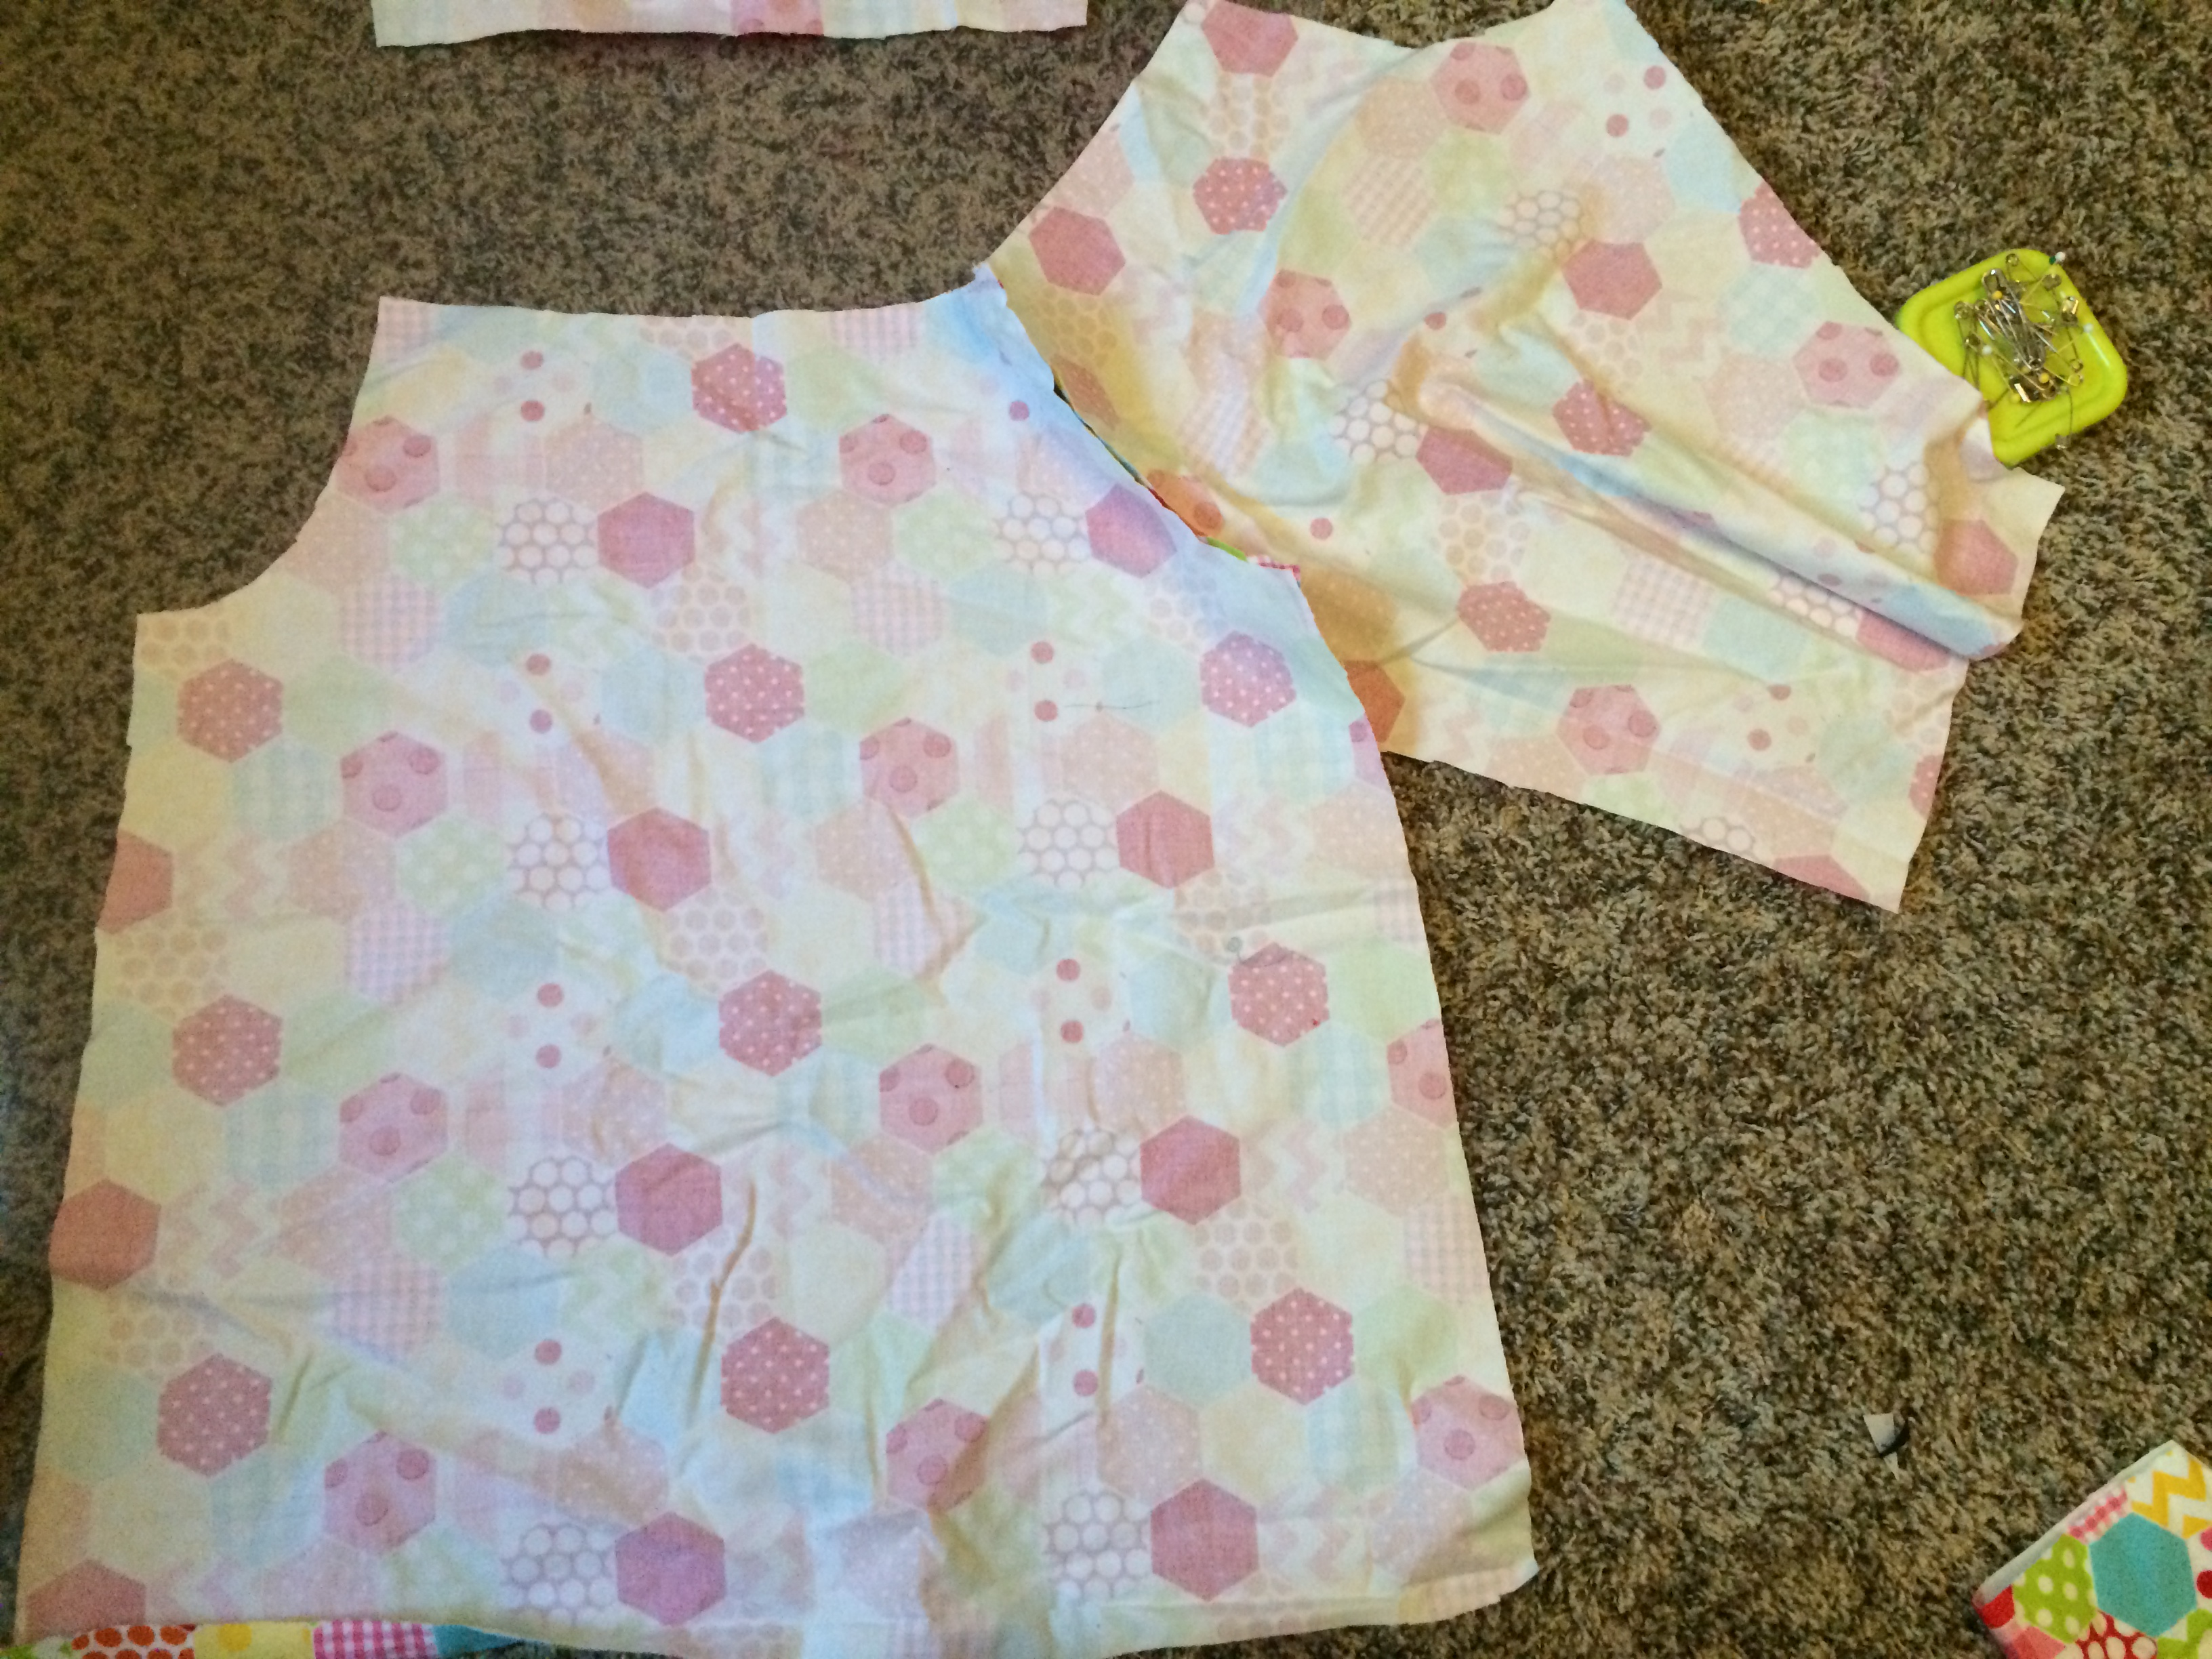 Sew Baby Doll Clothes Newest and Cutest Baby Clothing Collection